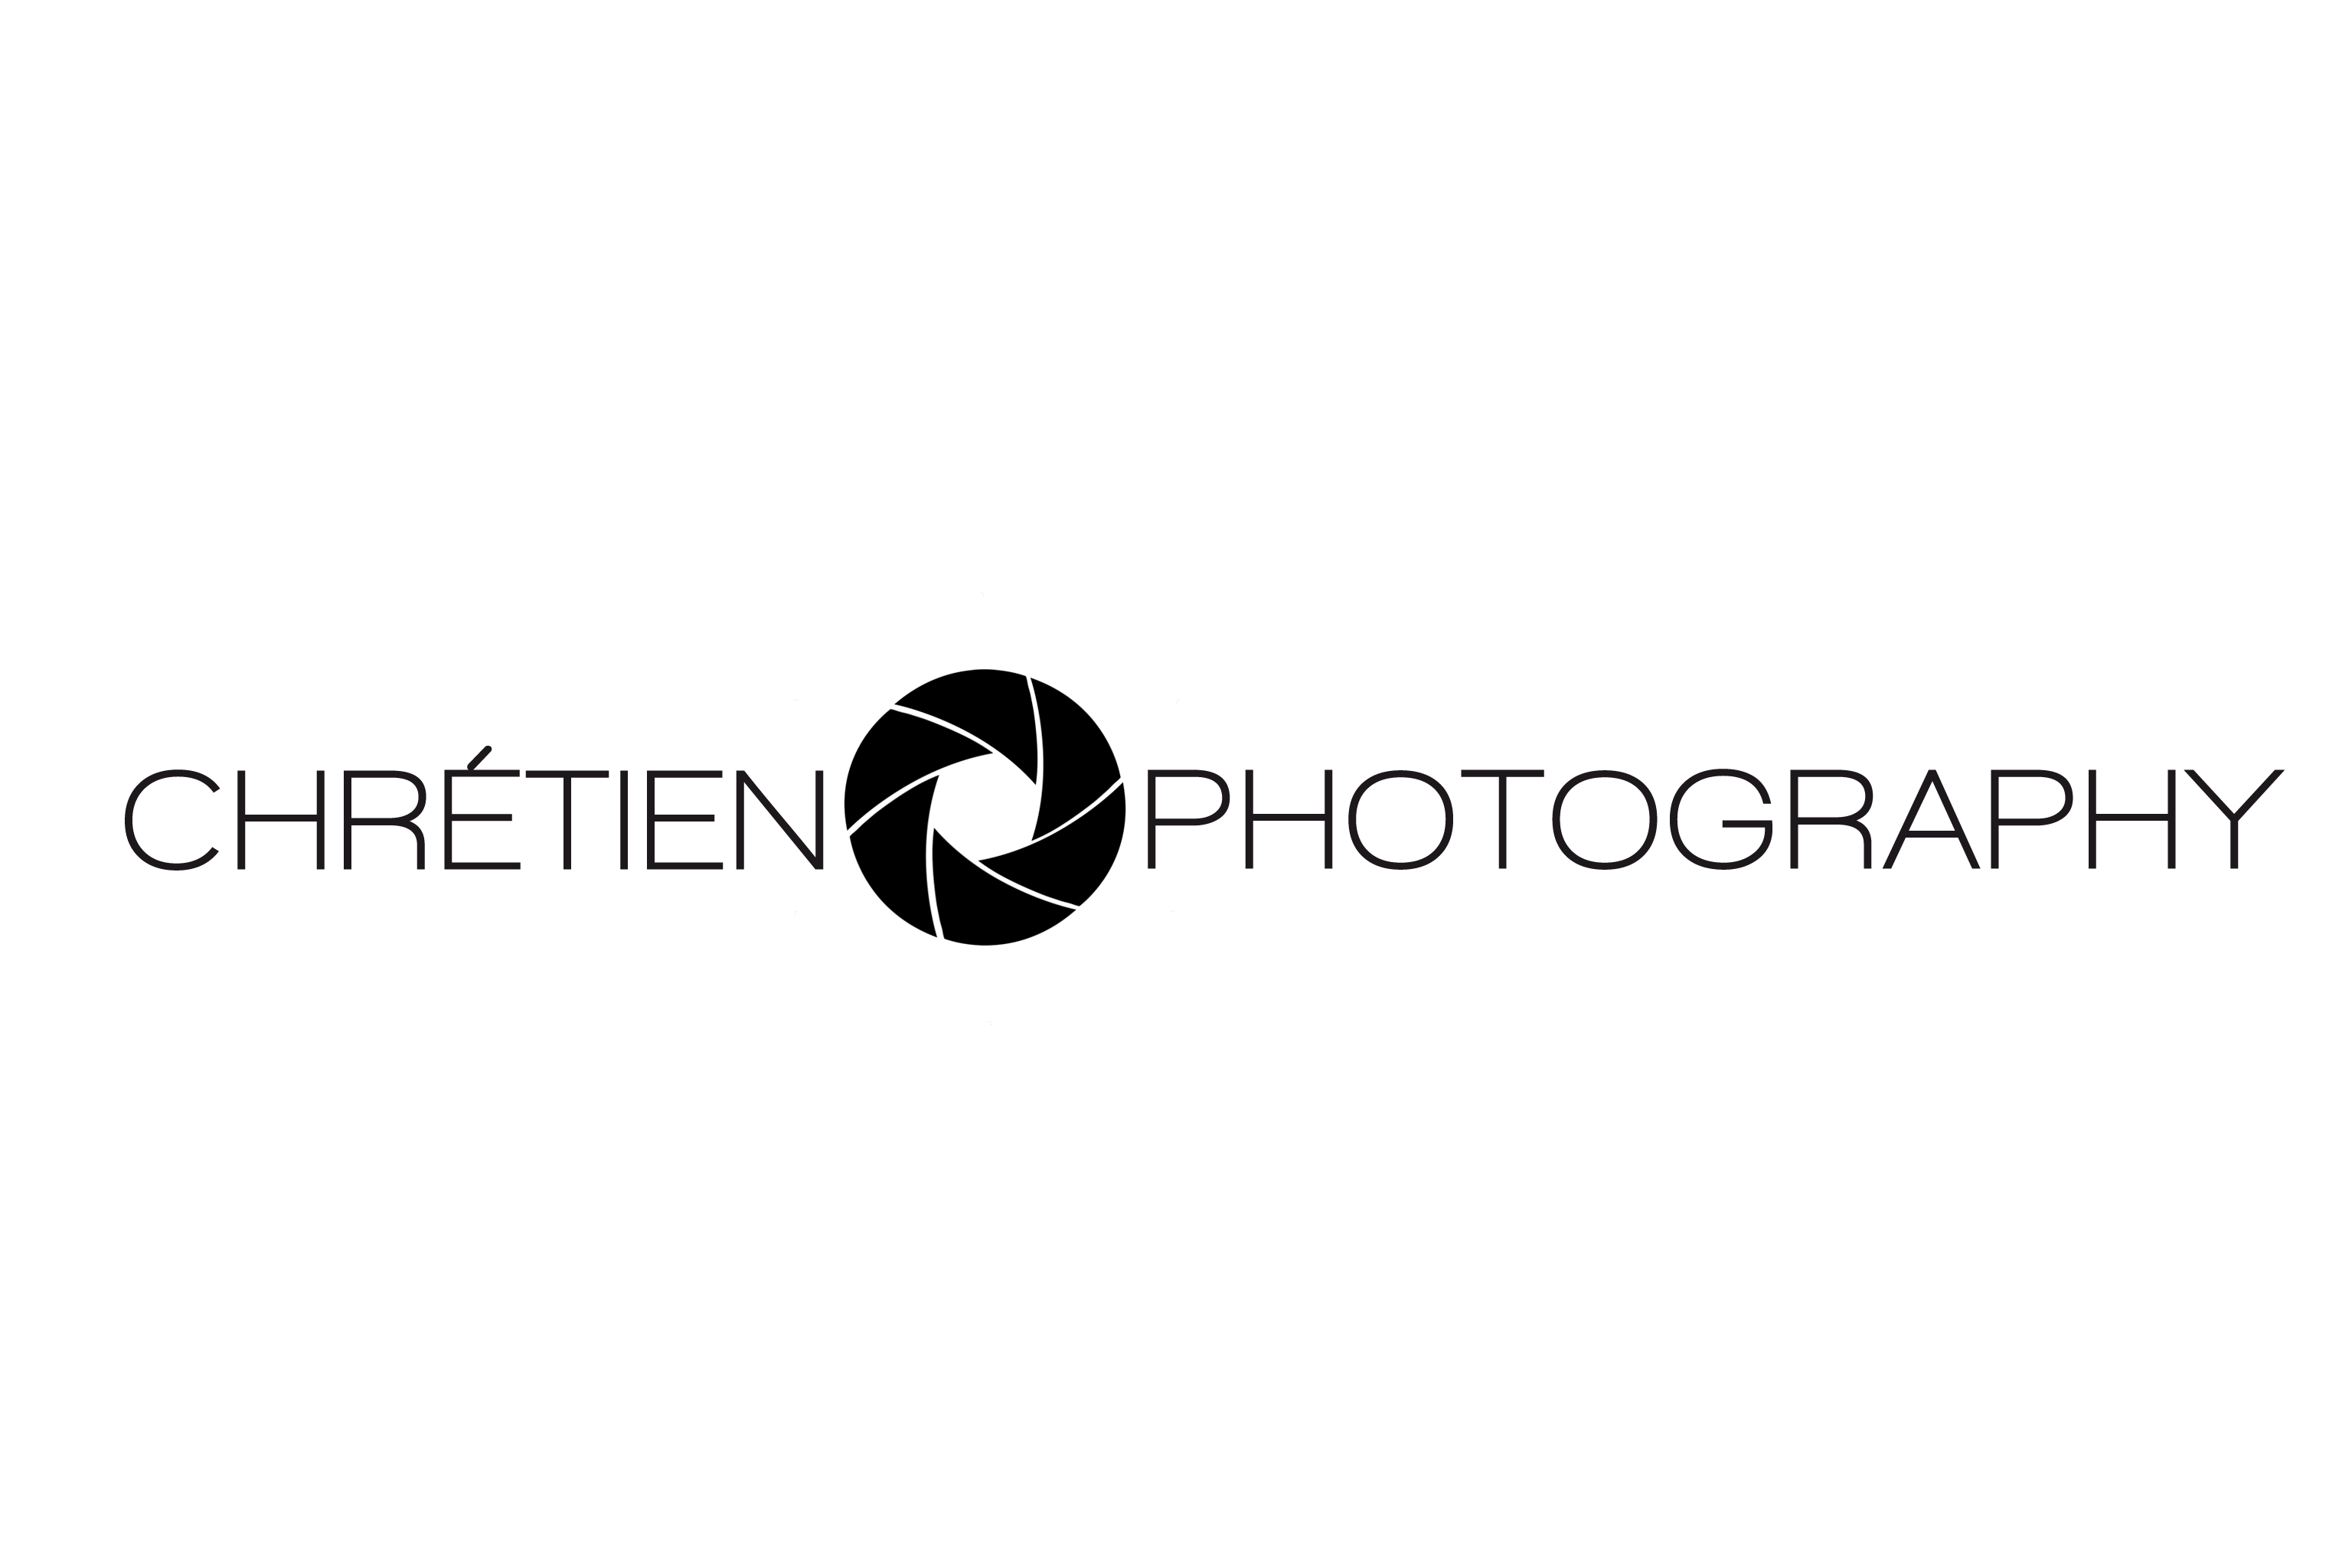 Photography watermark png. Image